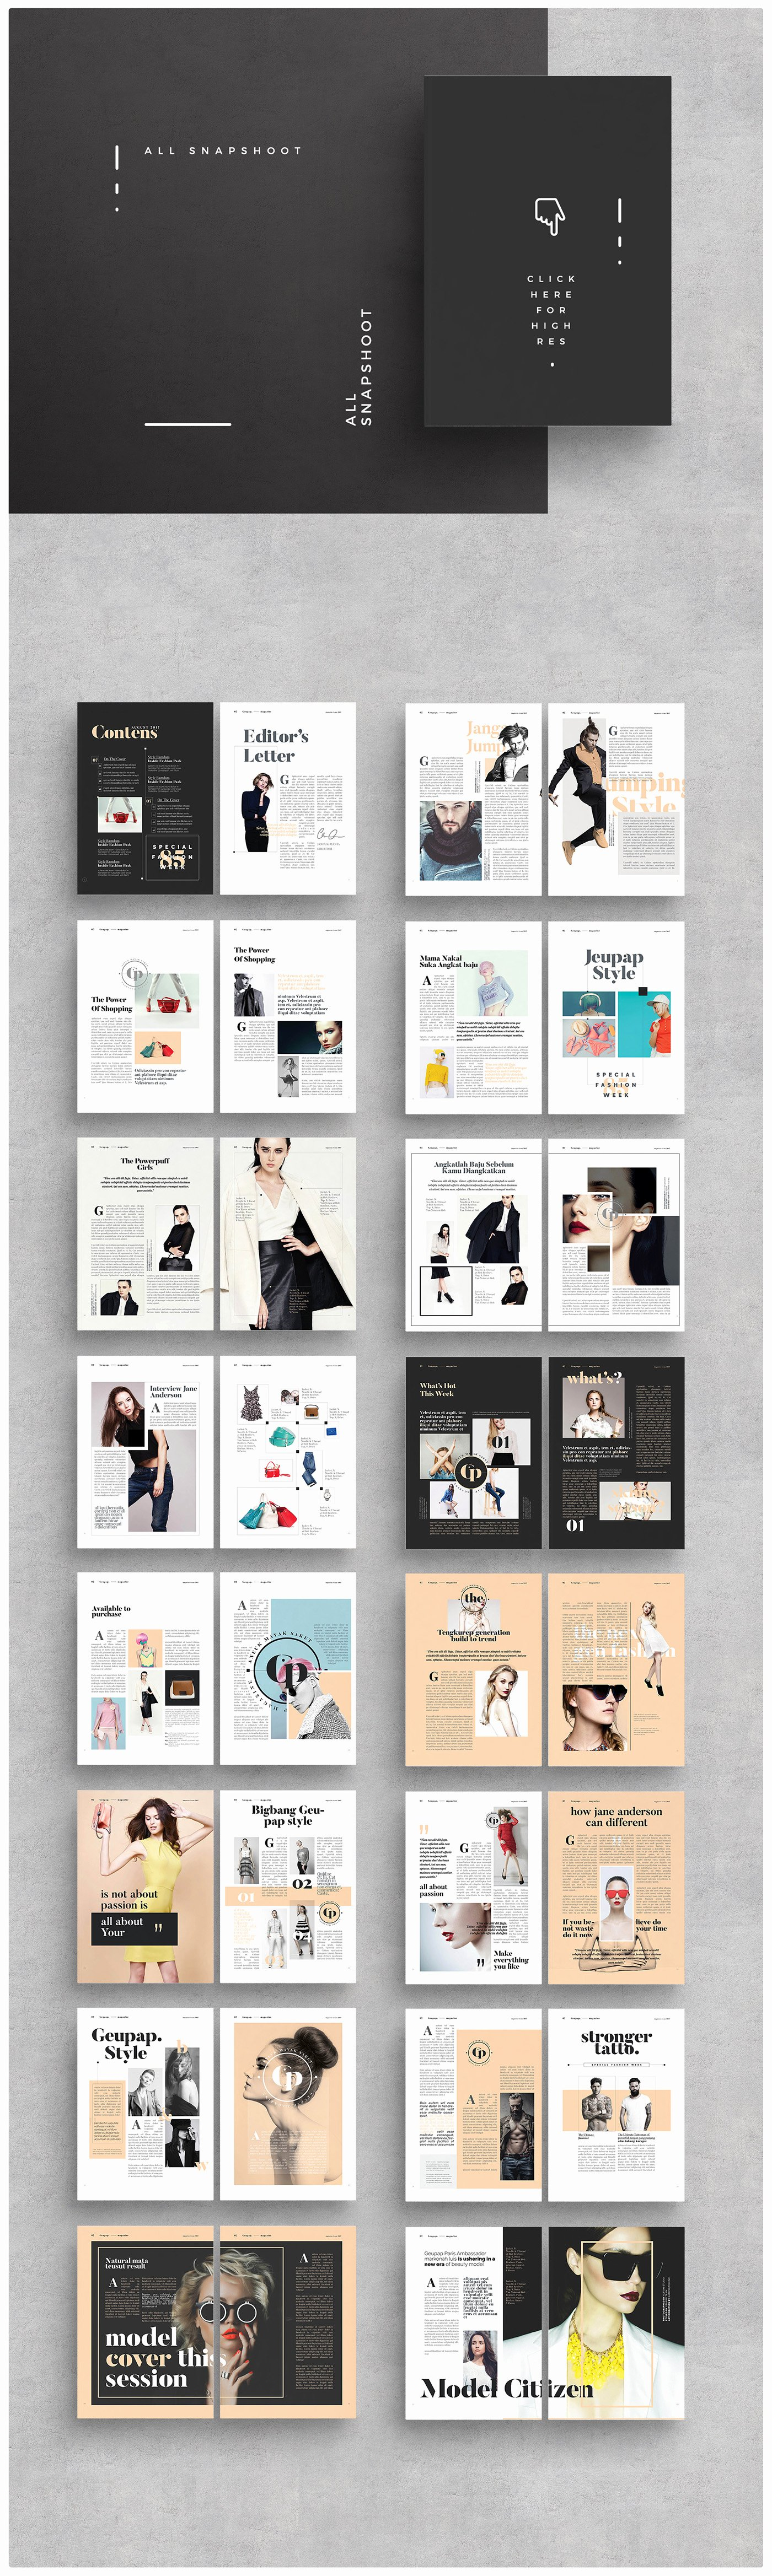 Magazine Layout Template Indesign Inspirational Magazine Layout On Behance